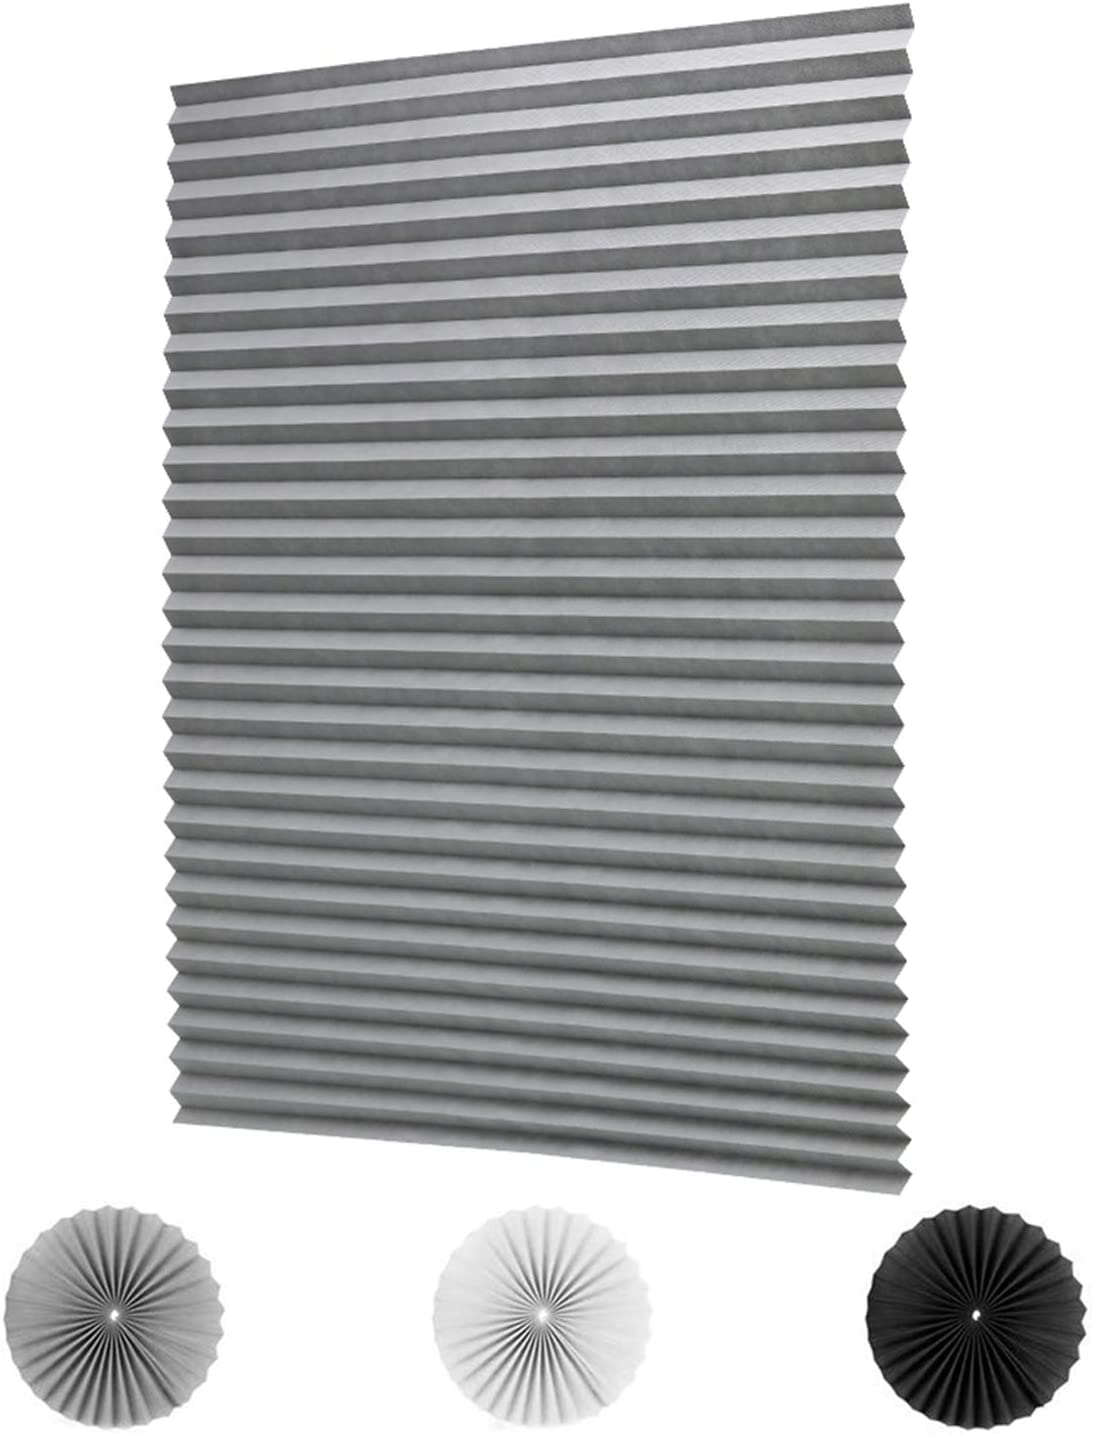 LUCKUP 2 Pack Cordless Light Filtering Pleated Fabric Shade,Easy to Cut and Install, with 4 Clips (48